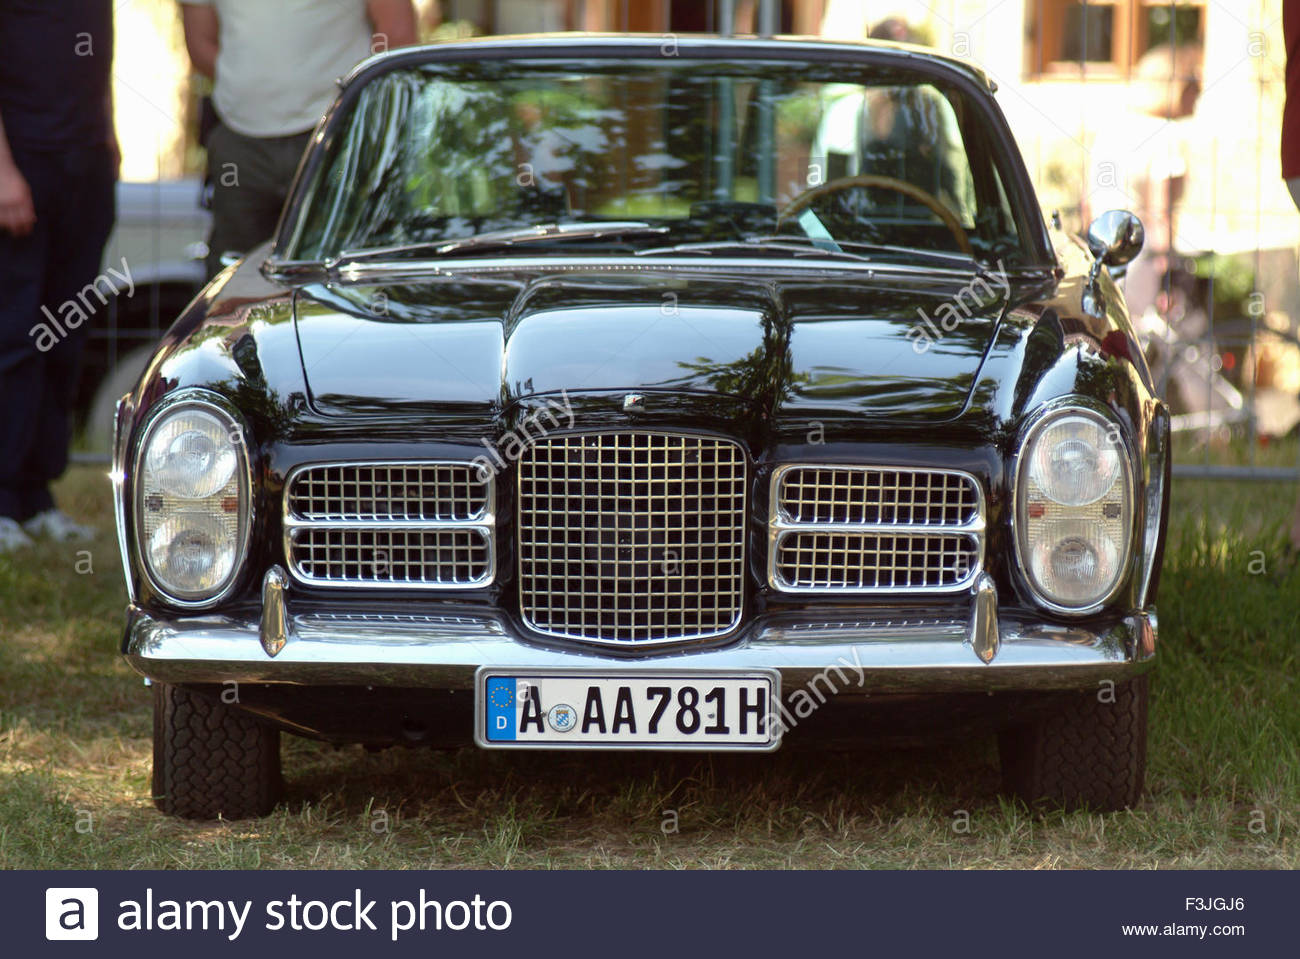 Old german mercedes benz car germany stock photo for Mercedes benz deutschland